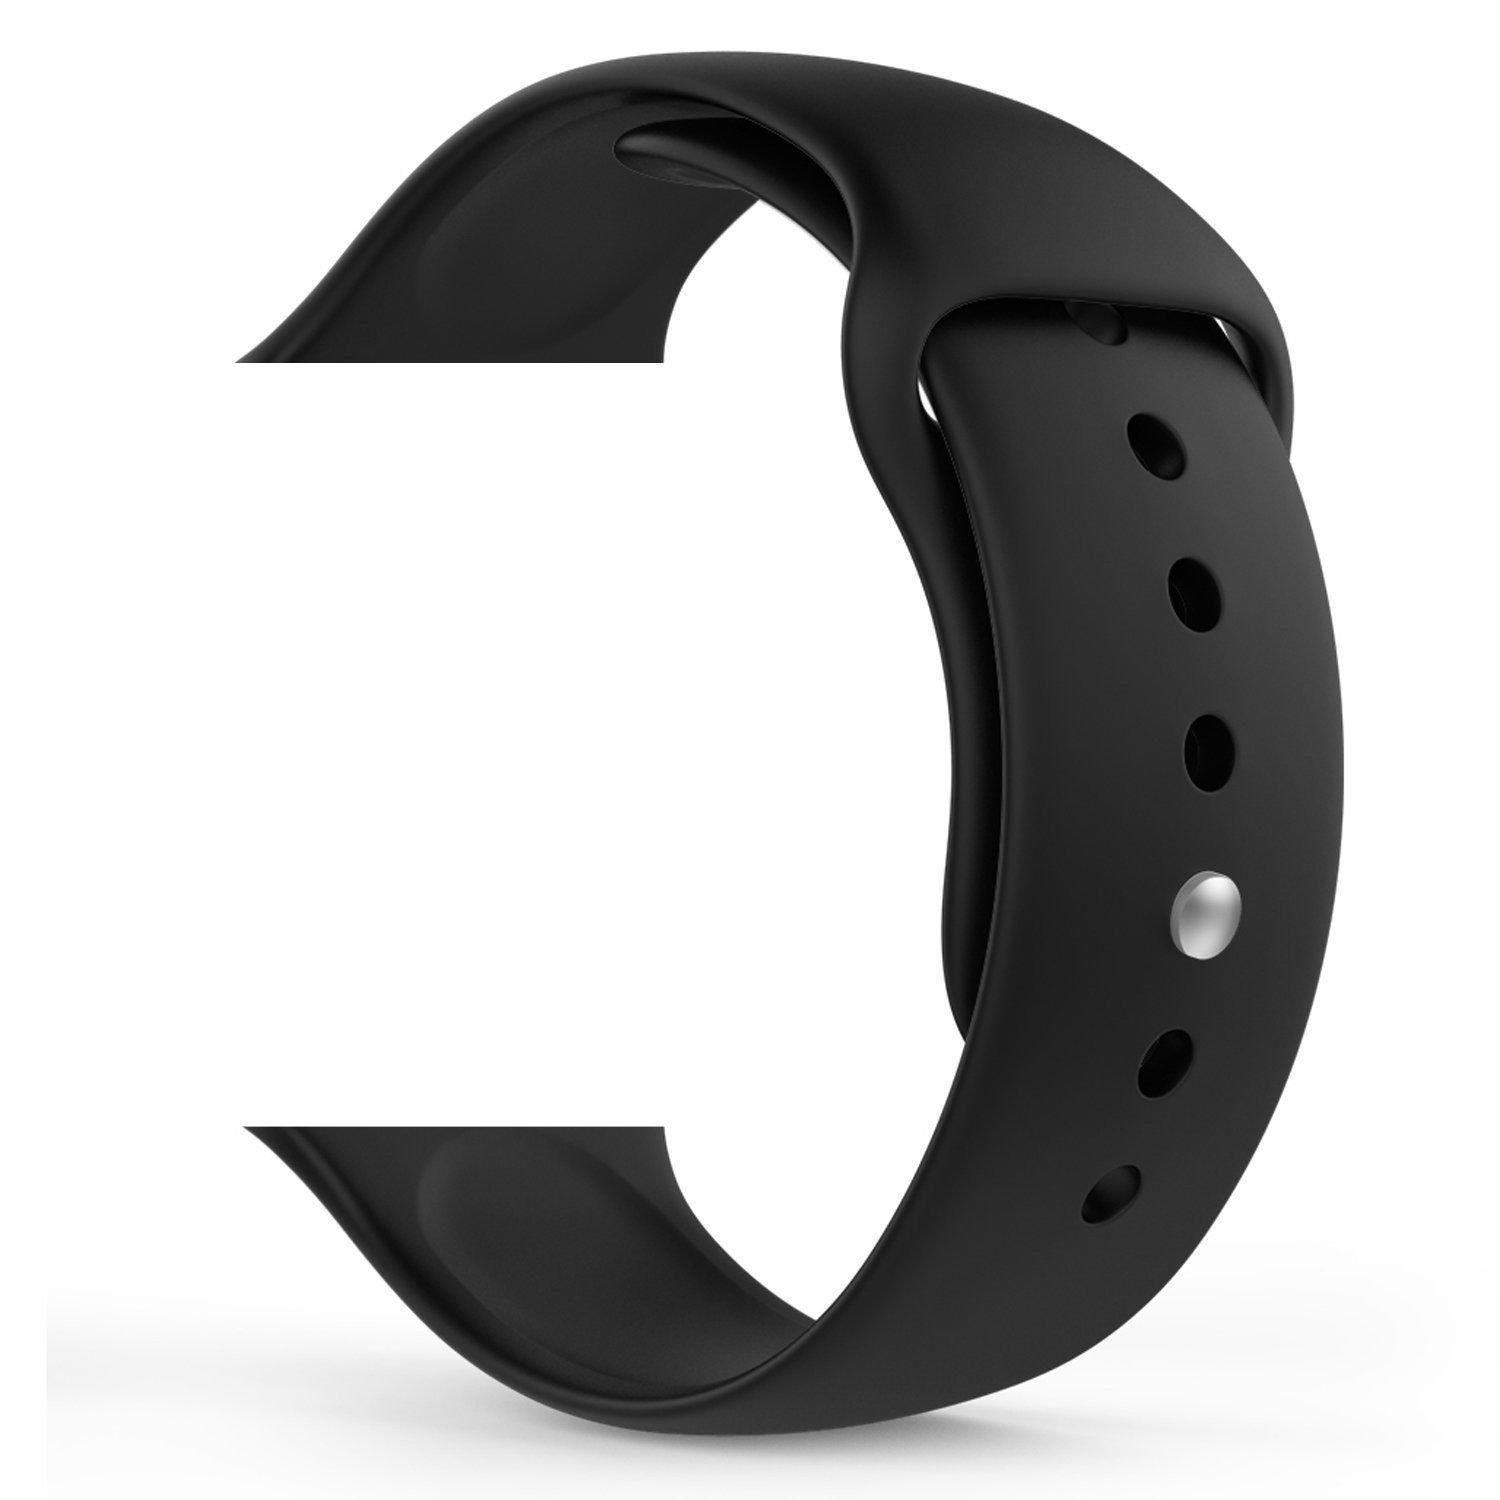 Juvnile Apple Watch Sport Band, Soft Silicone Replacement with Stainless Steel Pin (42mm, Black, Medium/Large (2Pcs))